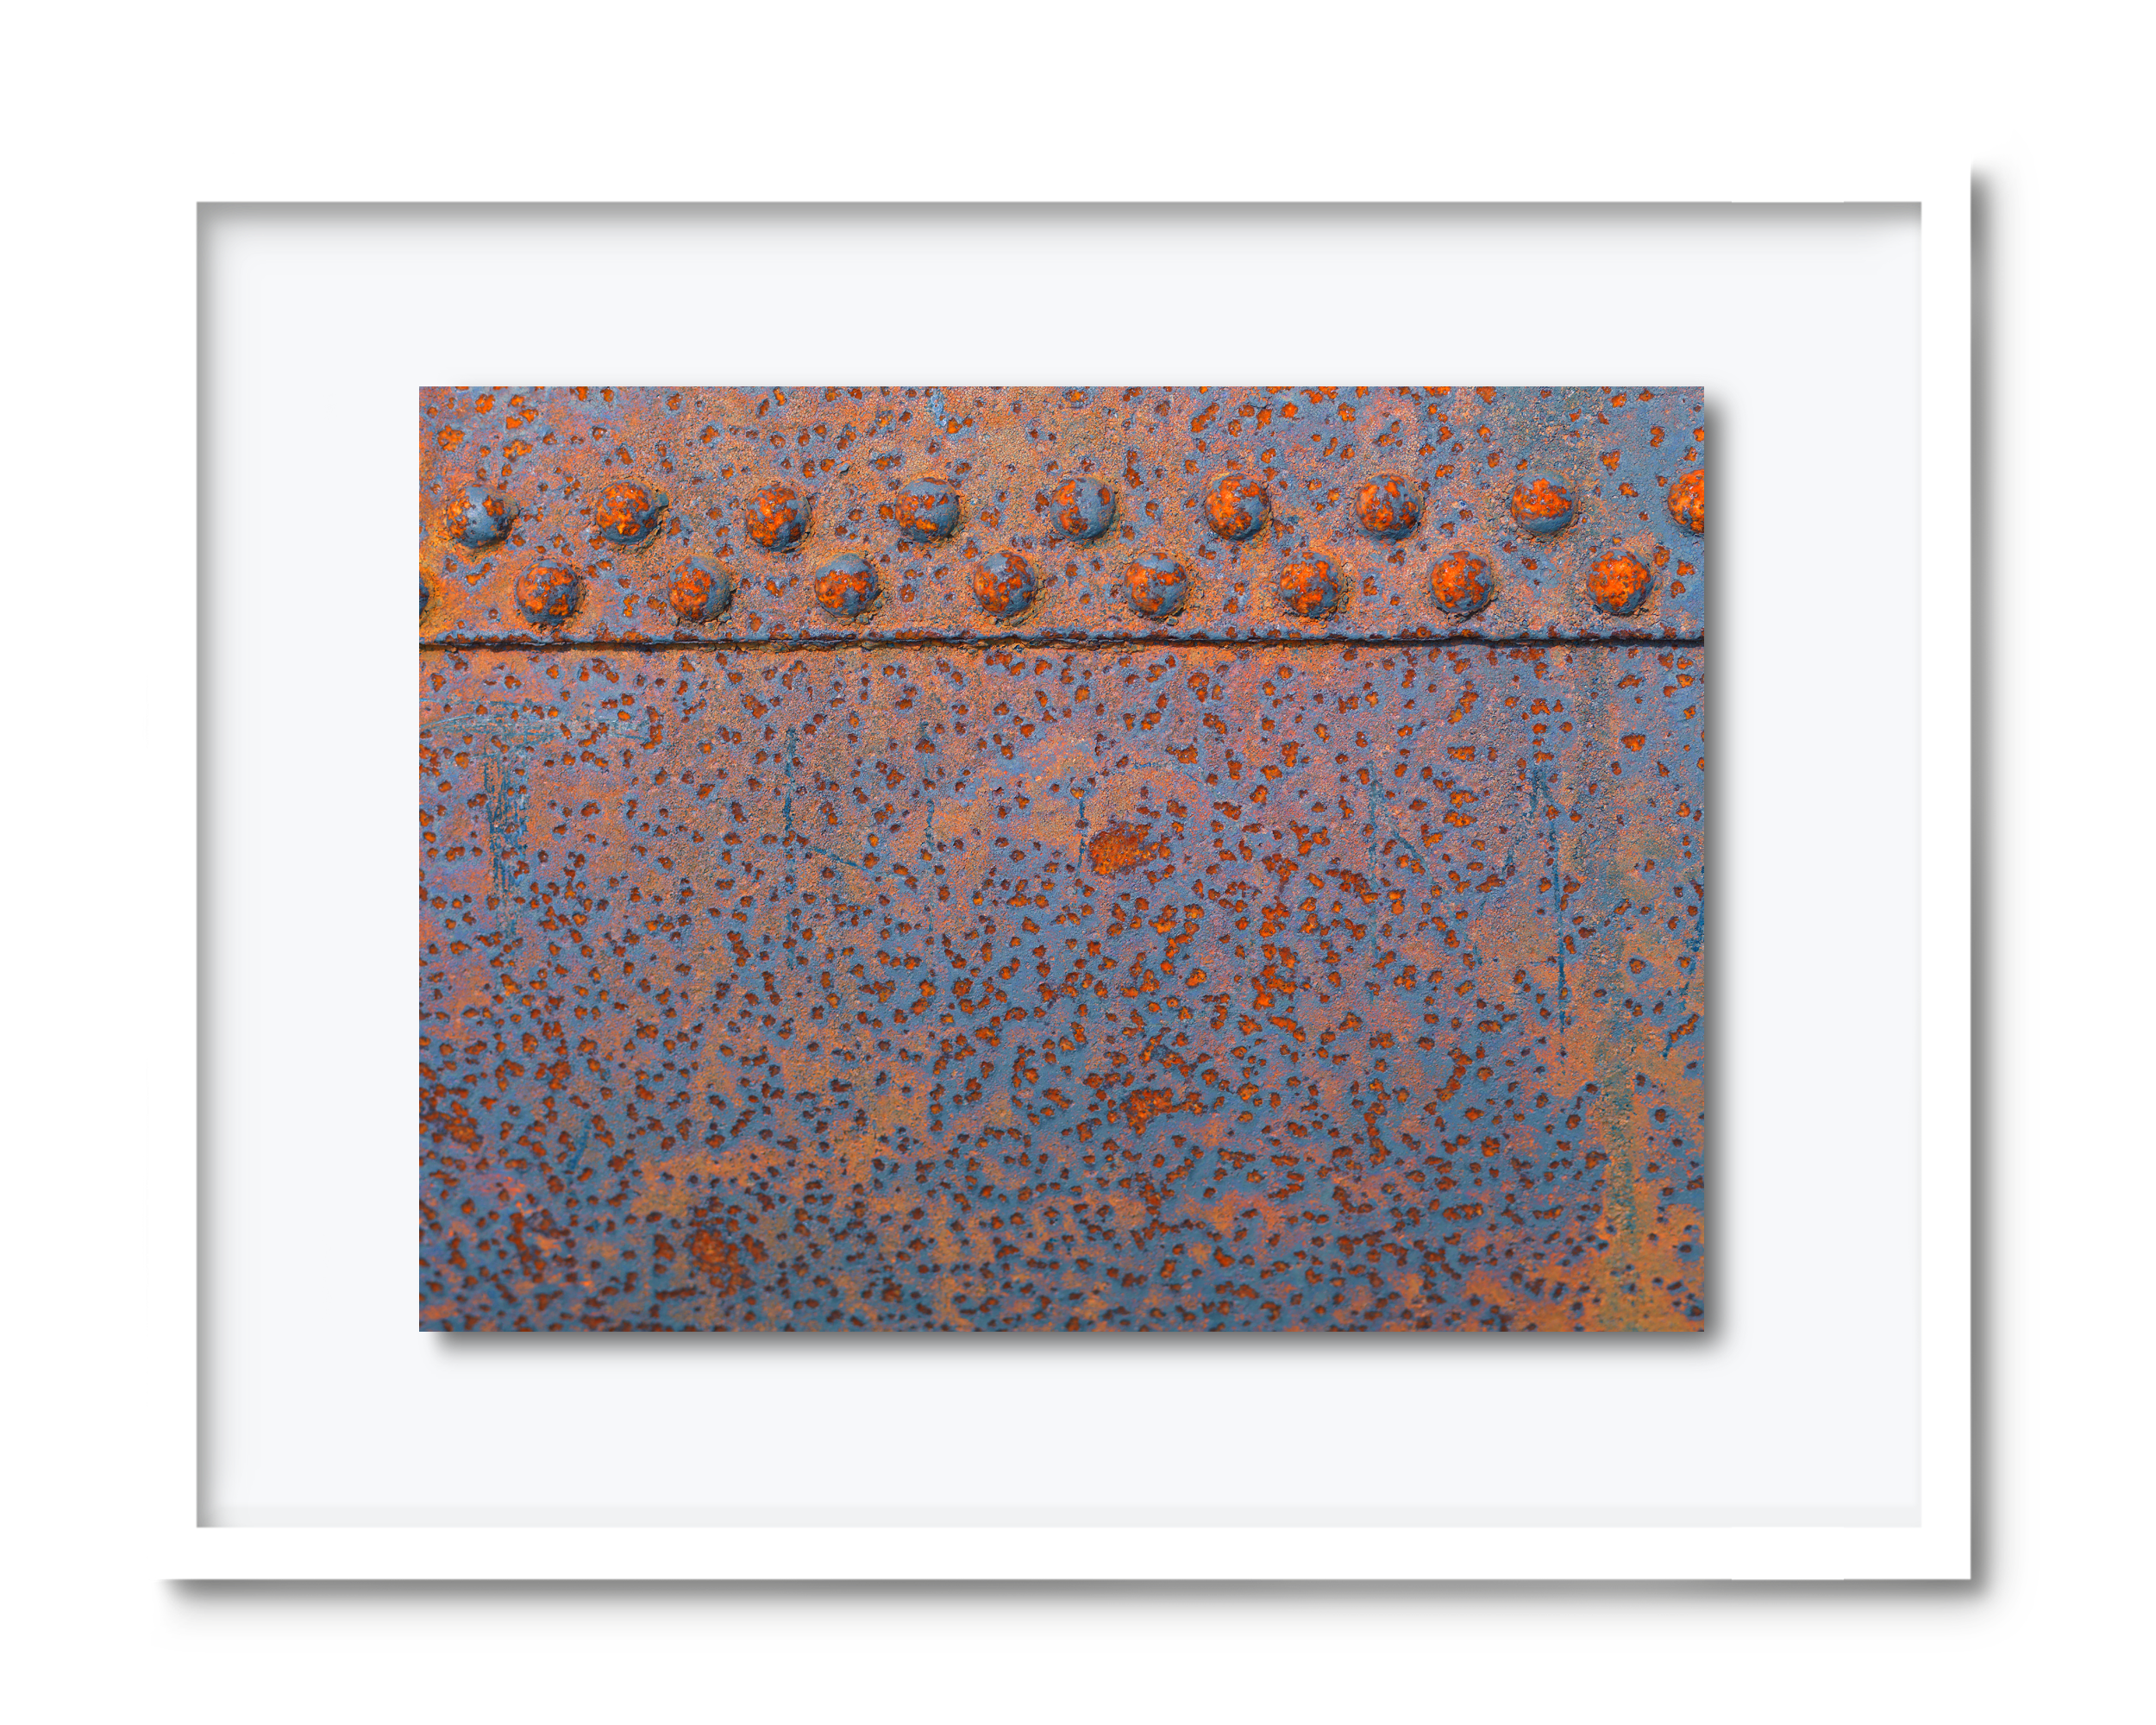 68.david-pearce-rust-texture.png